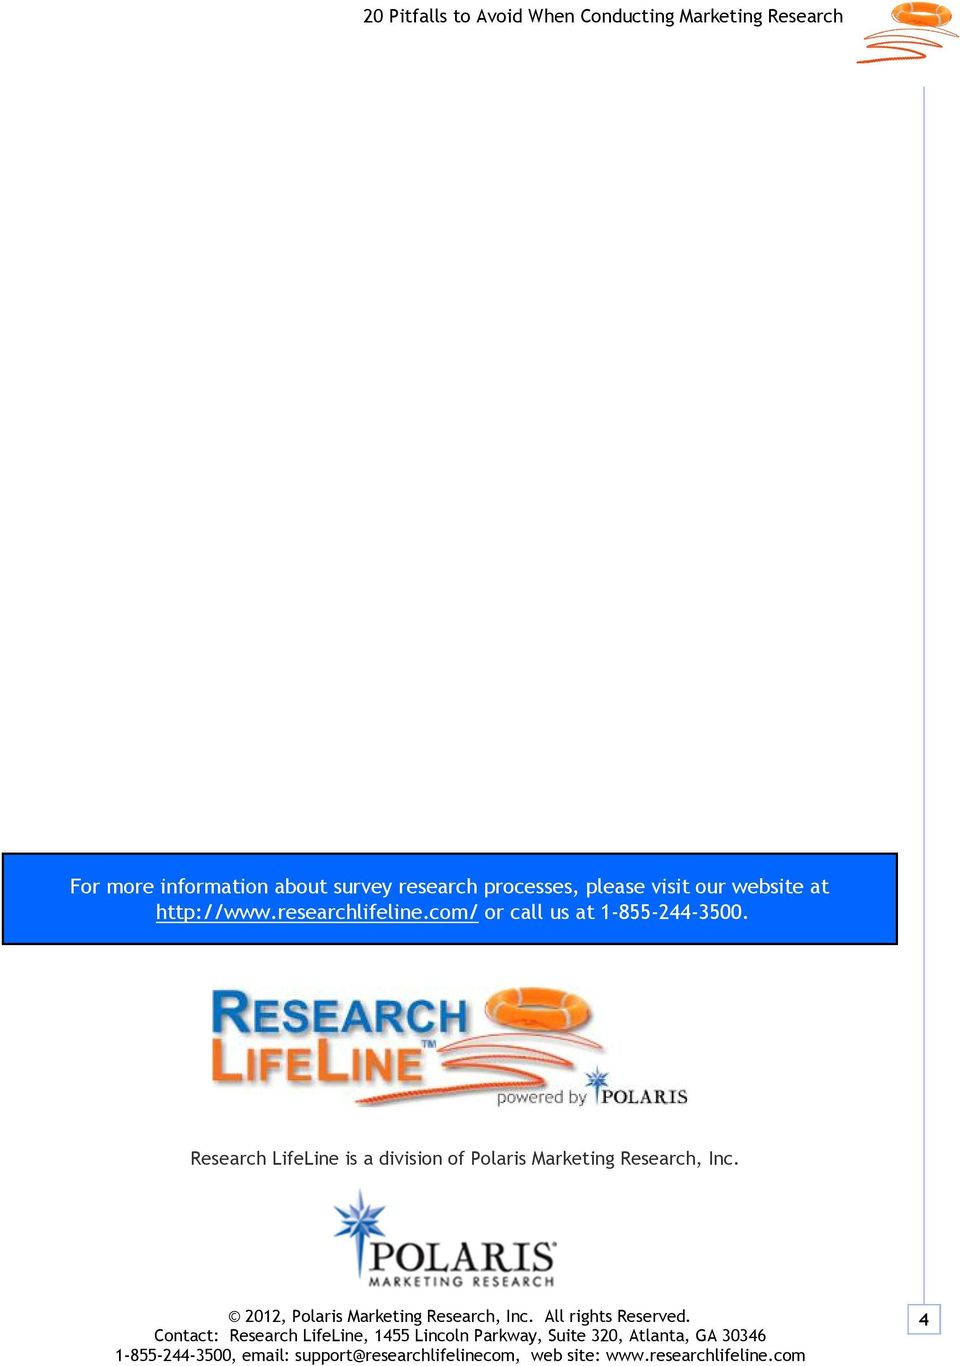 researchlifeline.com/ or call us at 1-855-244-3500.